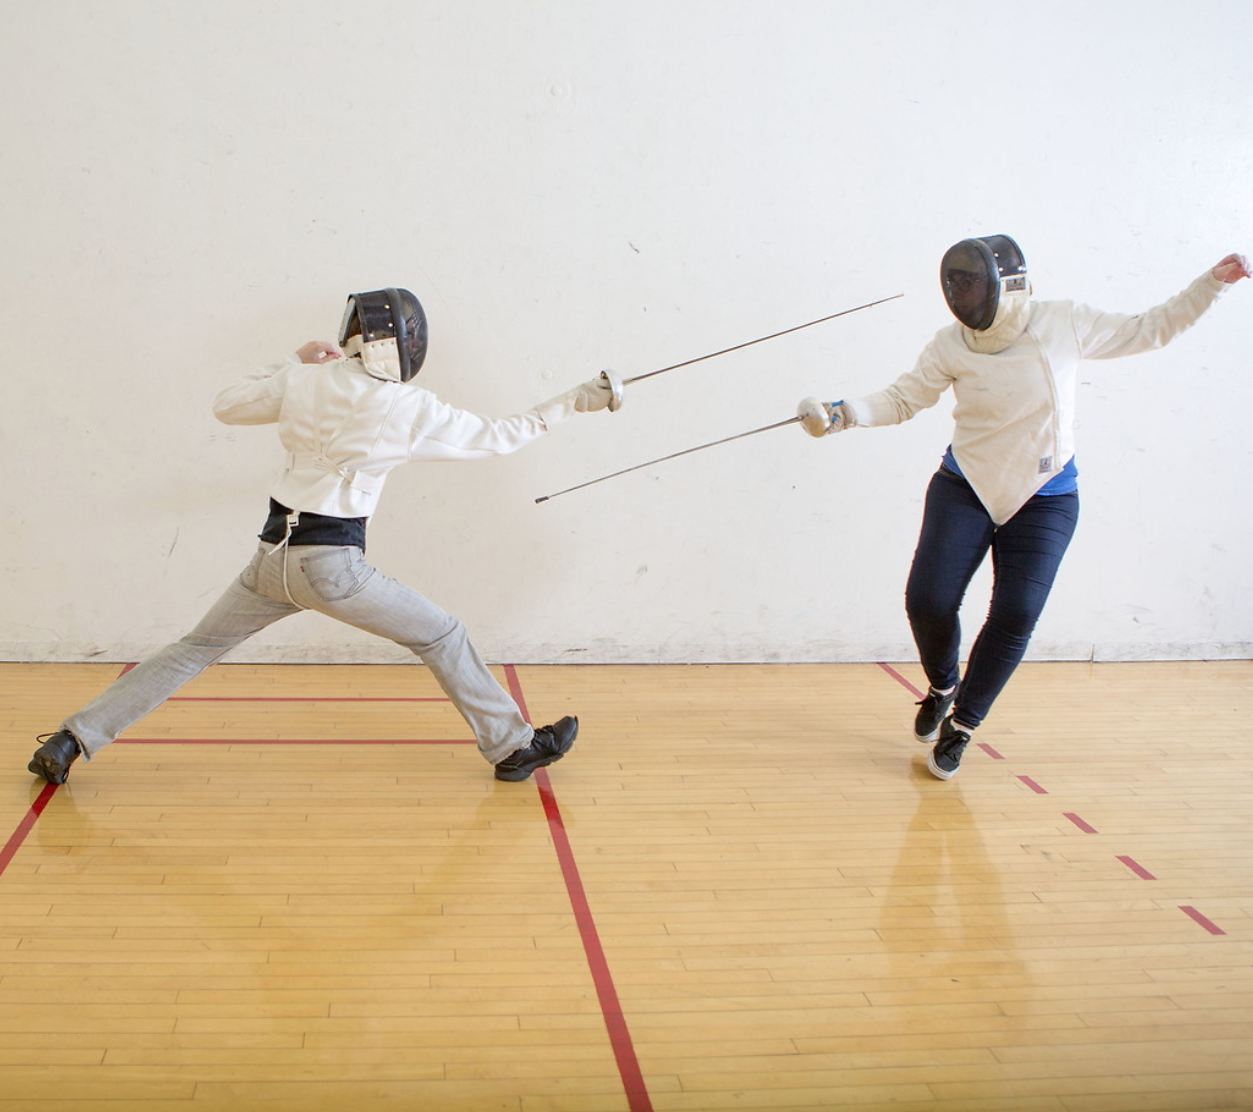 club sports at ONU - fencing is one option